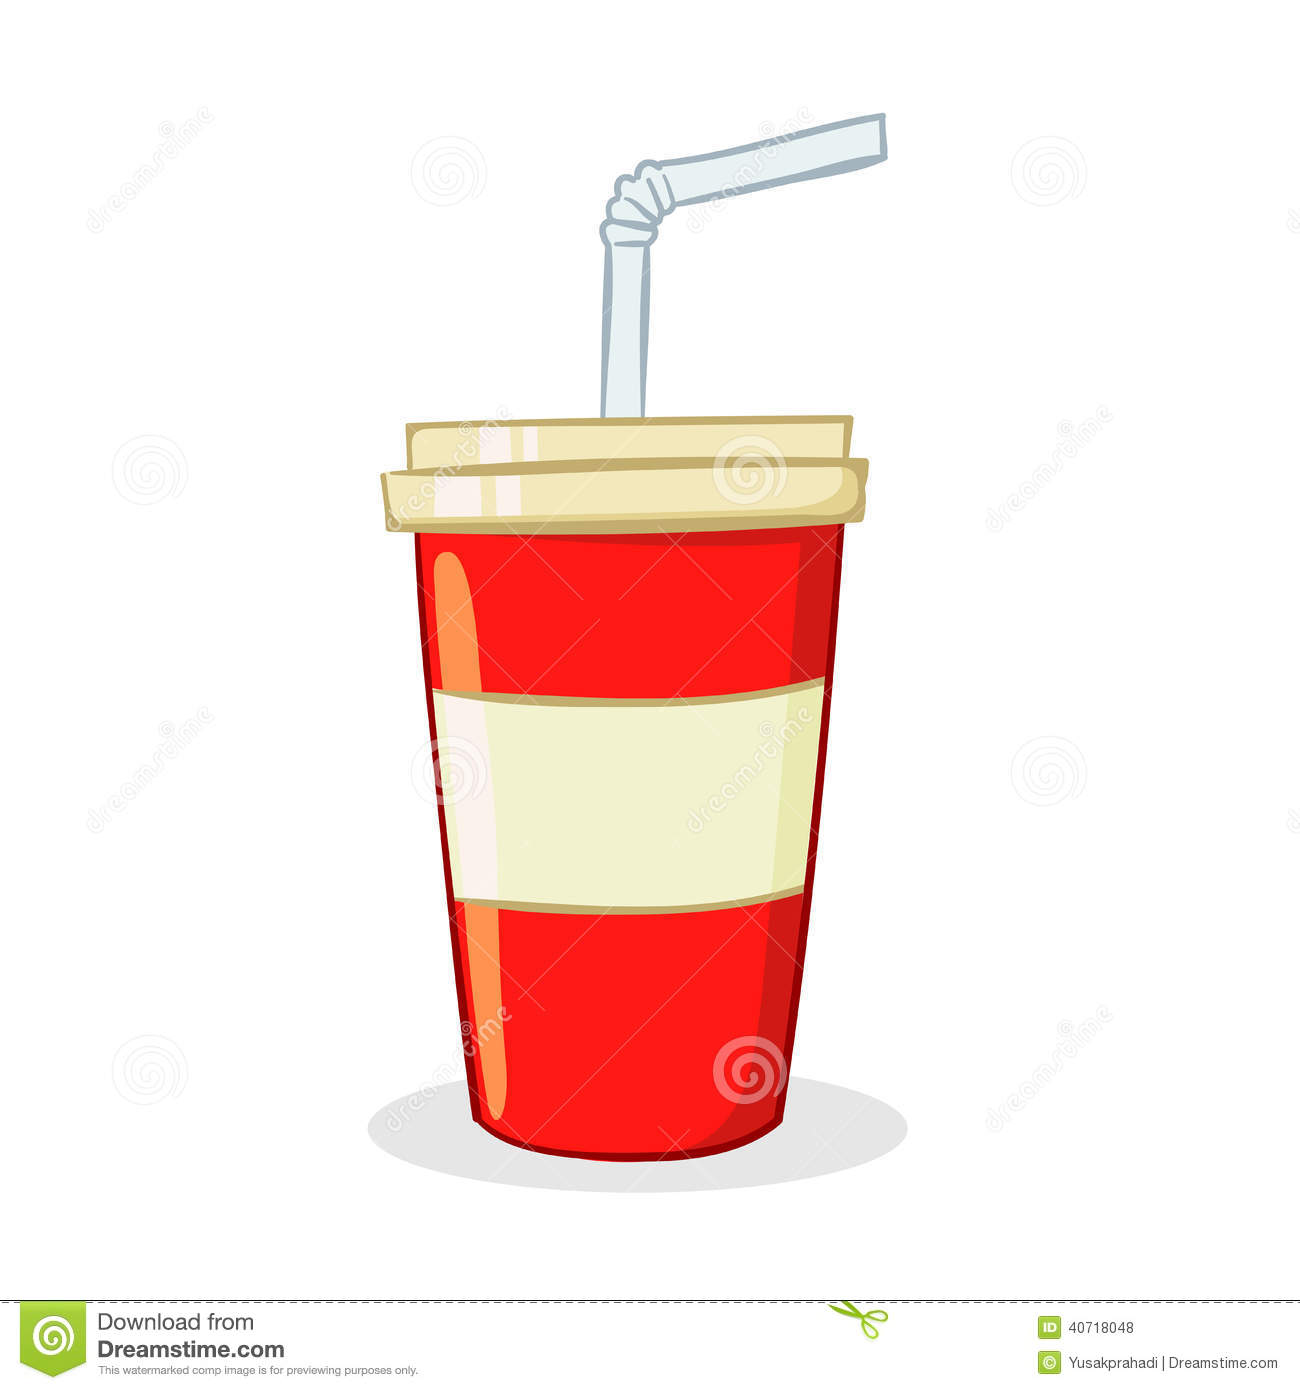 Soda Drink Cup Stock Vector - Image: 40718048